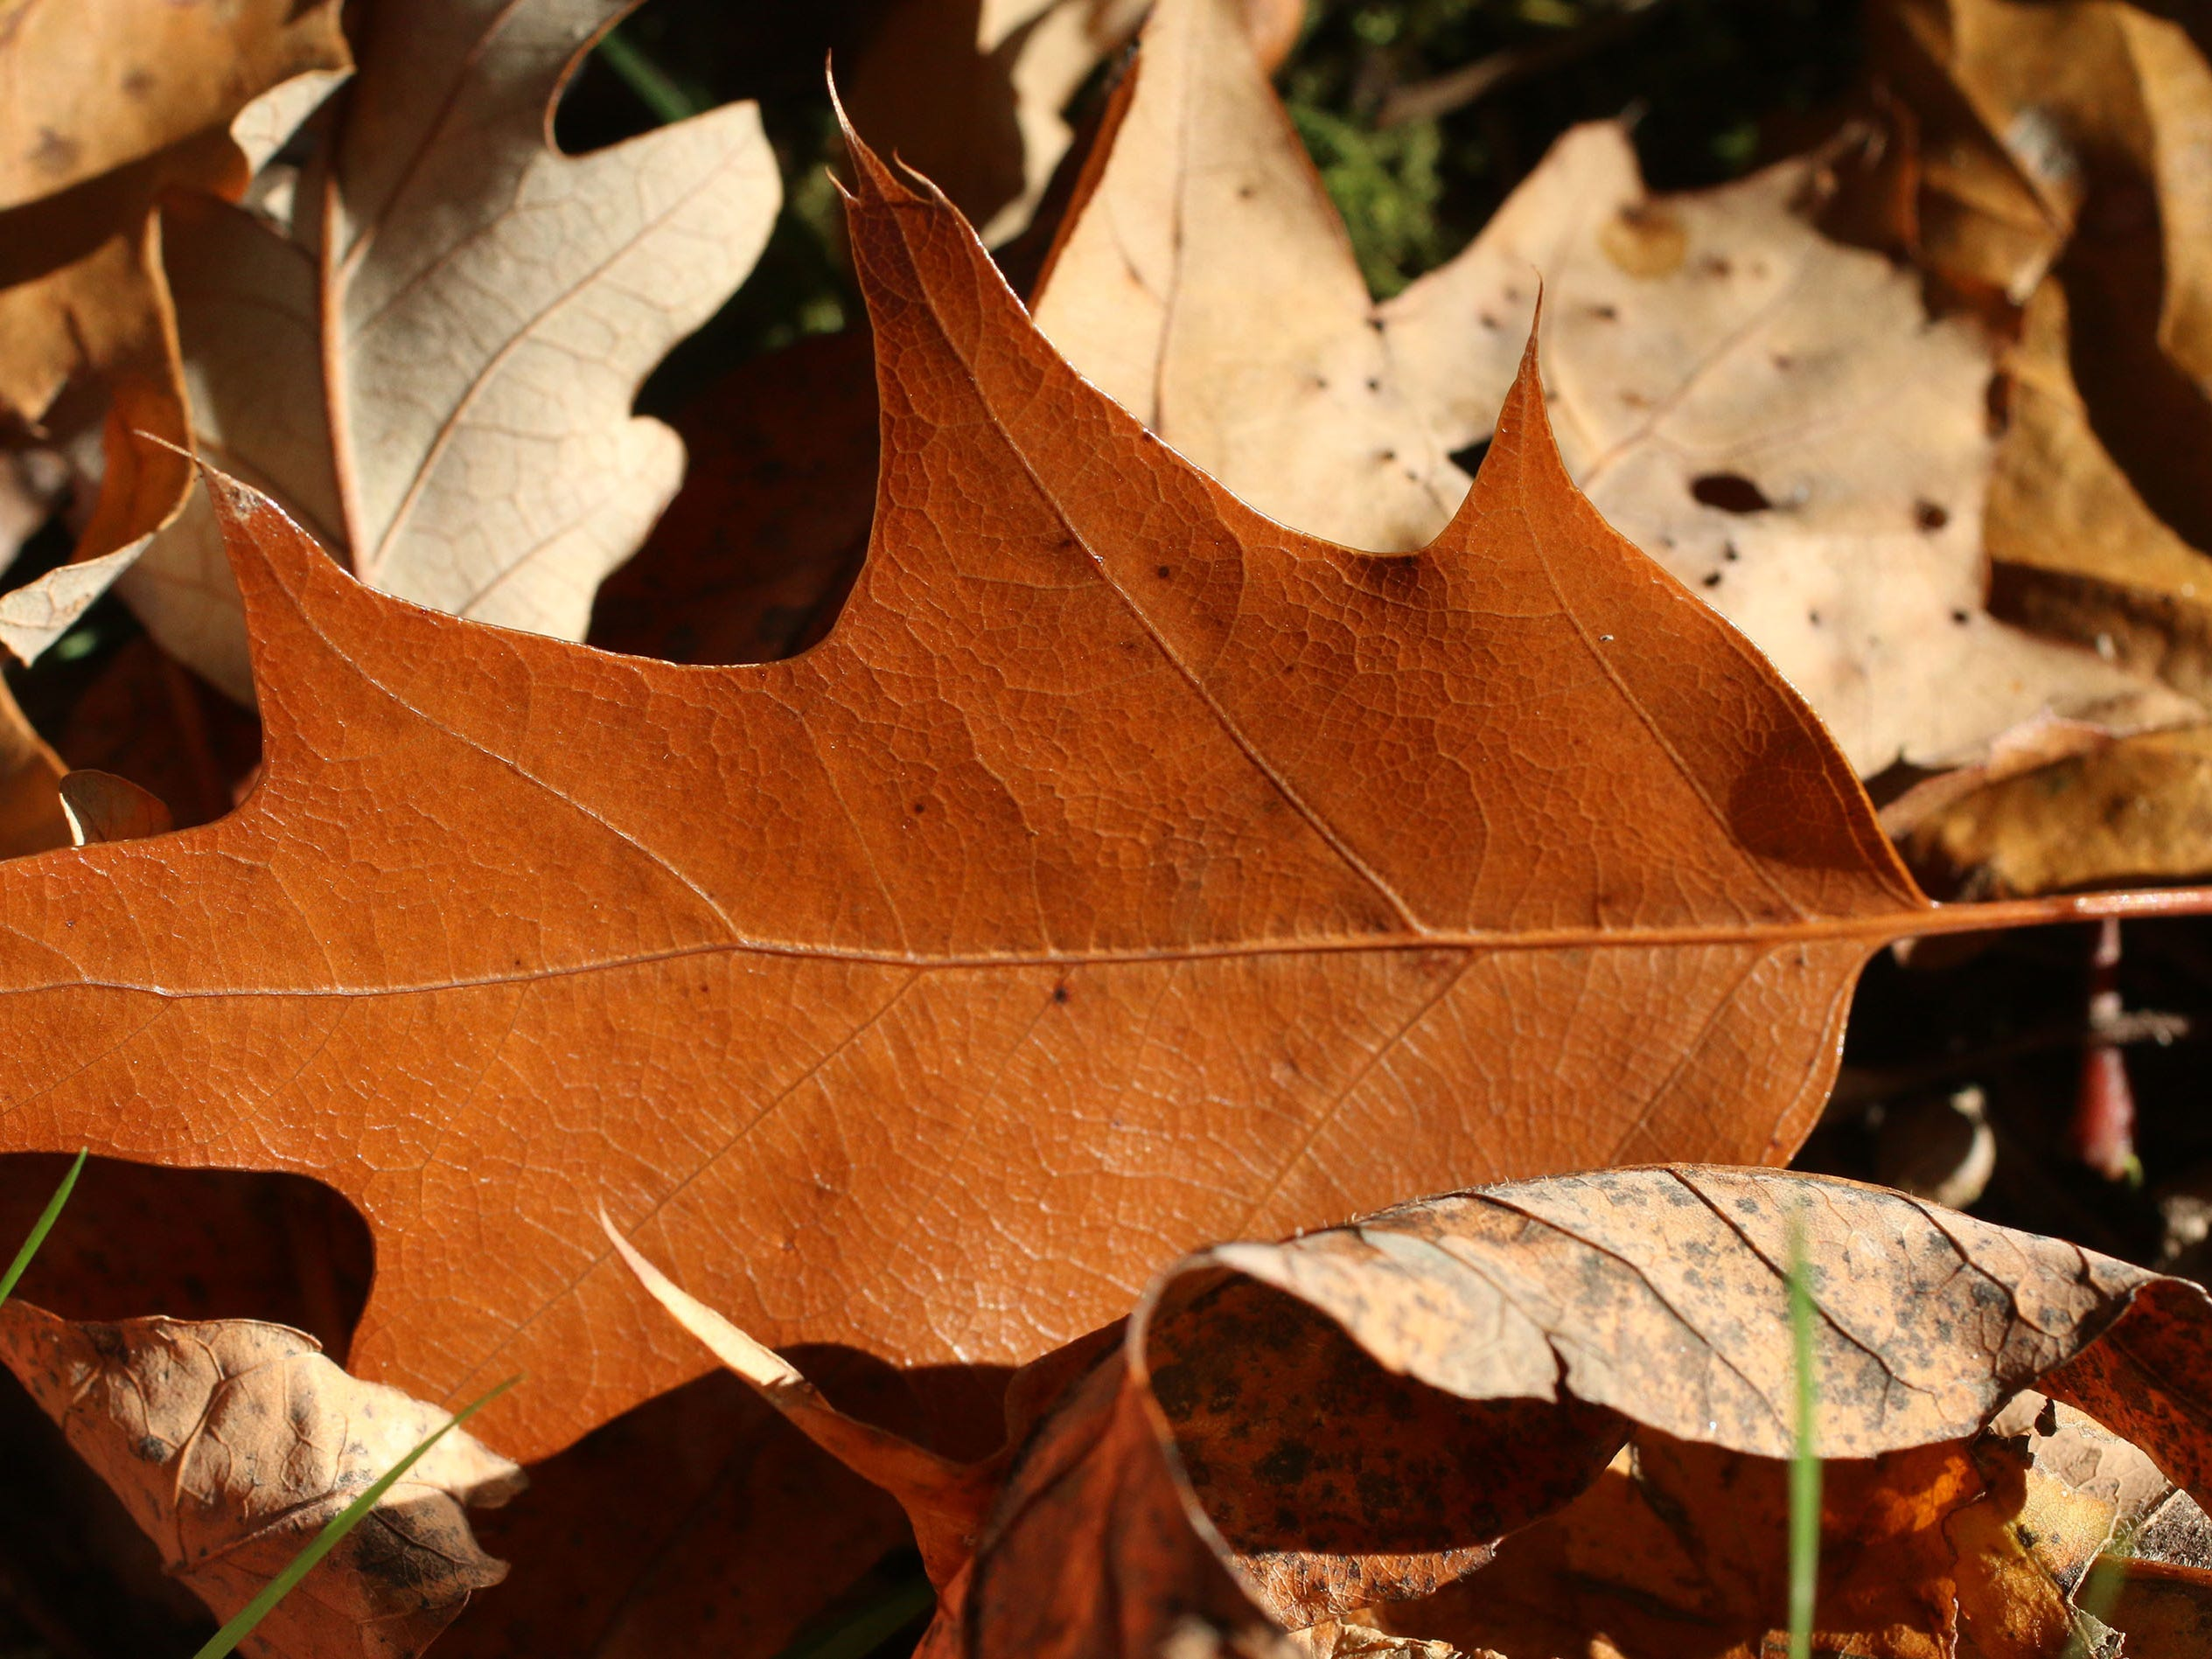 An oak leaf's texture is highlighted by the afternoon sun, Tuesday, October 16, 2018, in Kohler, Wis.